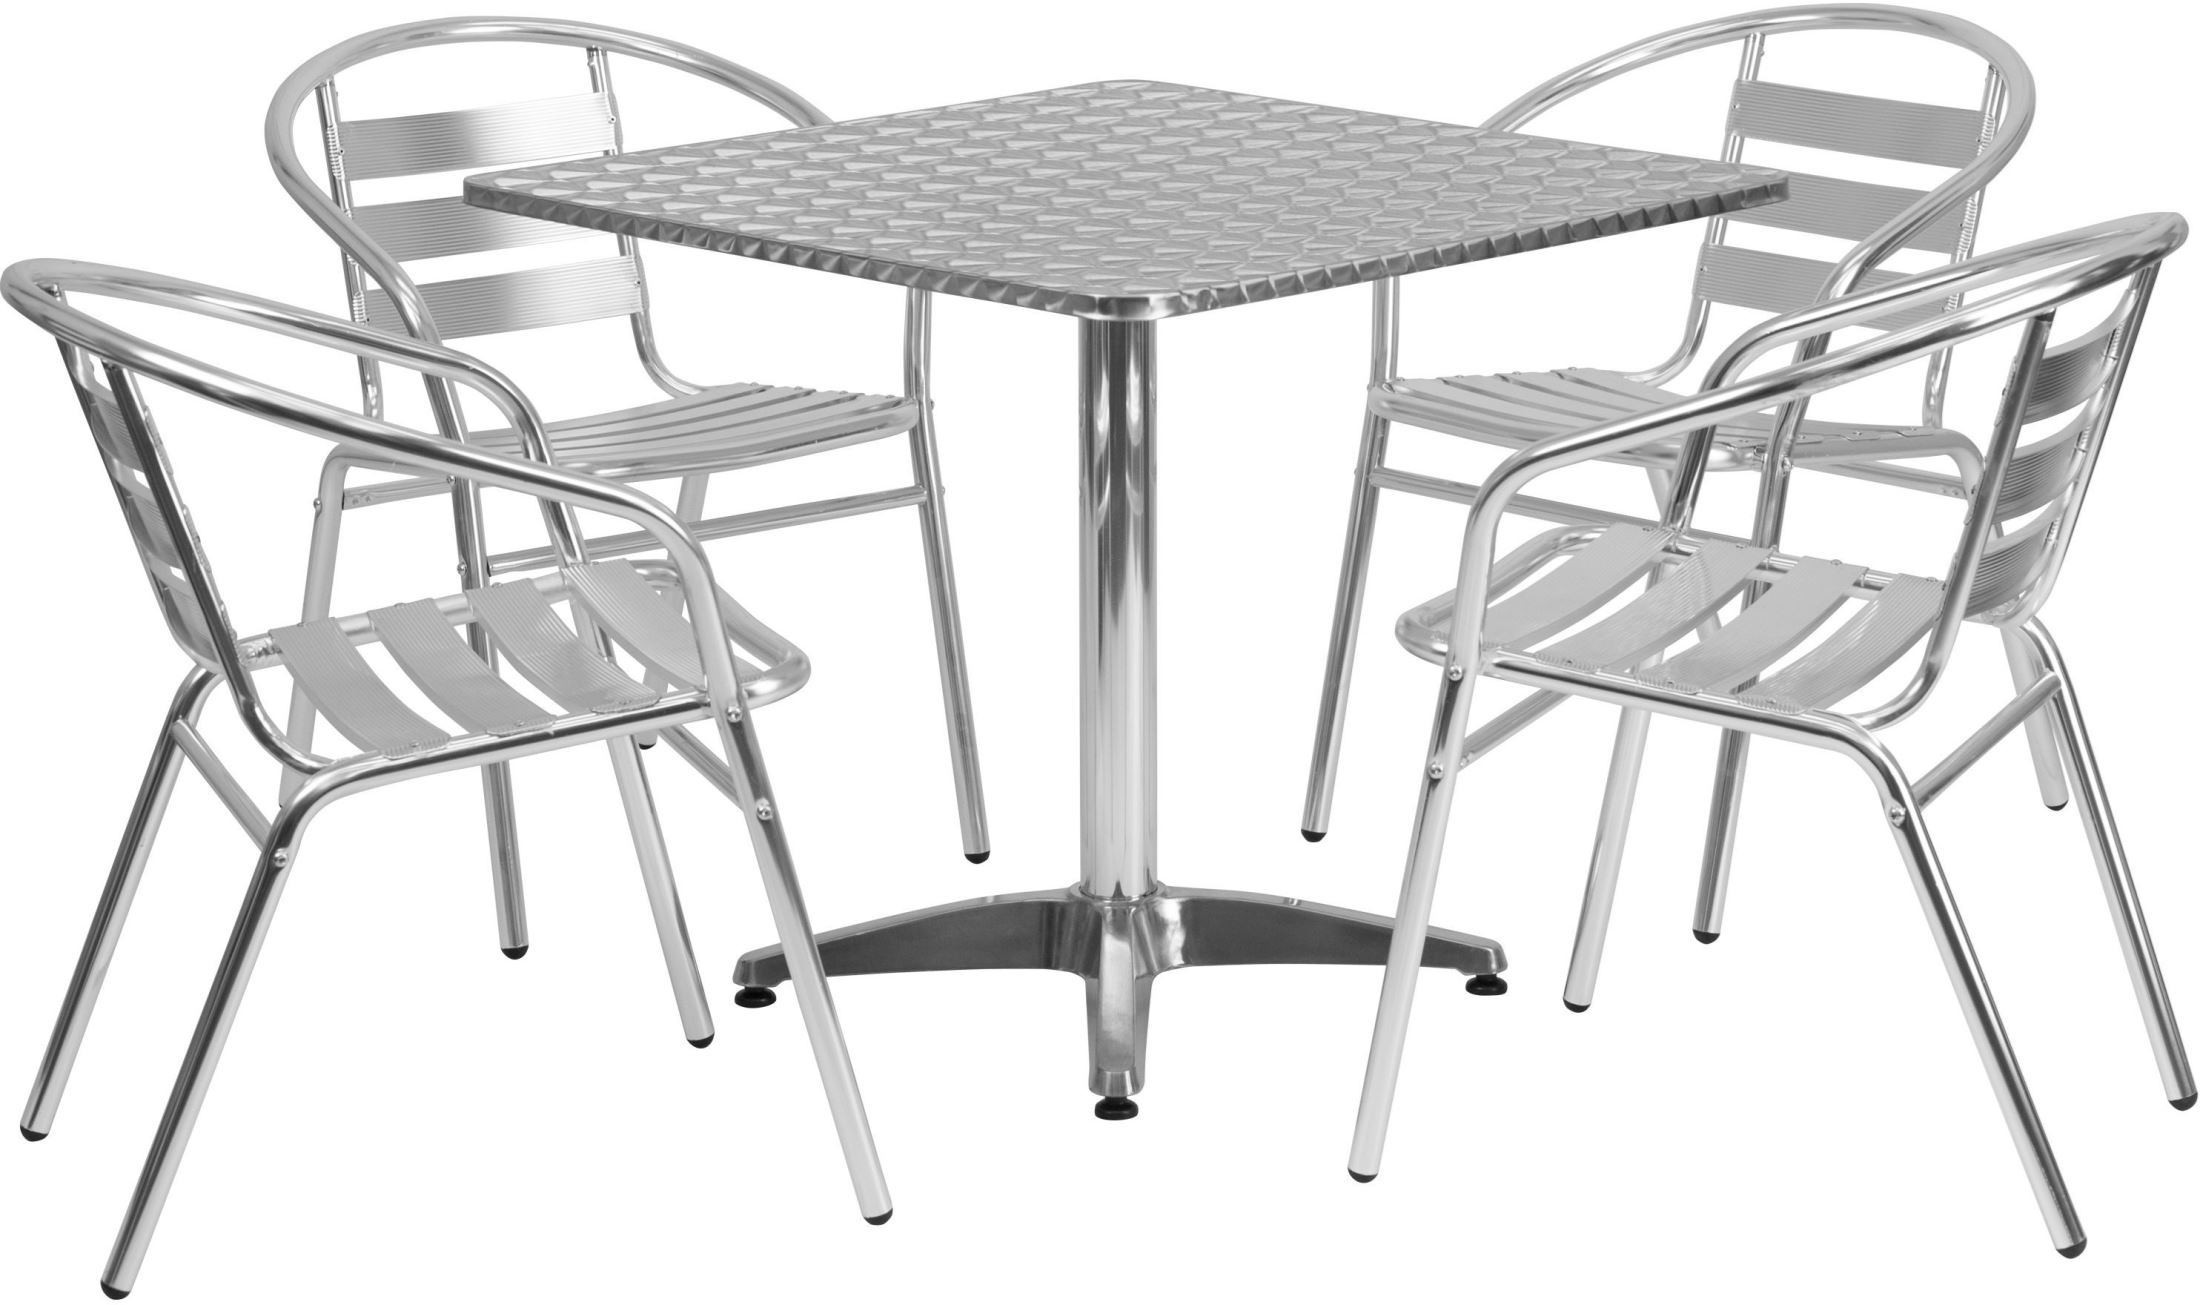 "Square Garden Table And 4 Chairs: 31.5"" Square Aluminum Indoor-Outdoor Table With 4 Slat"